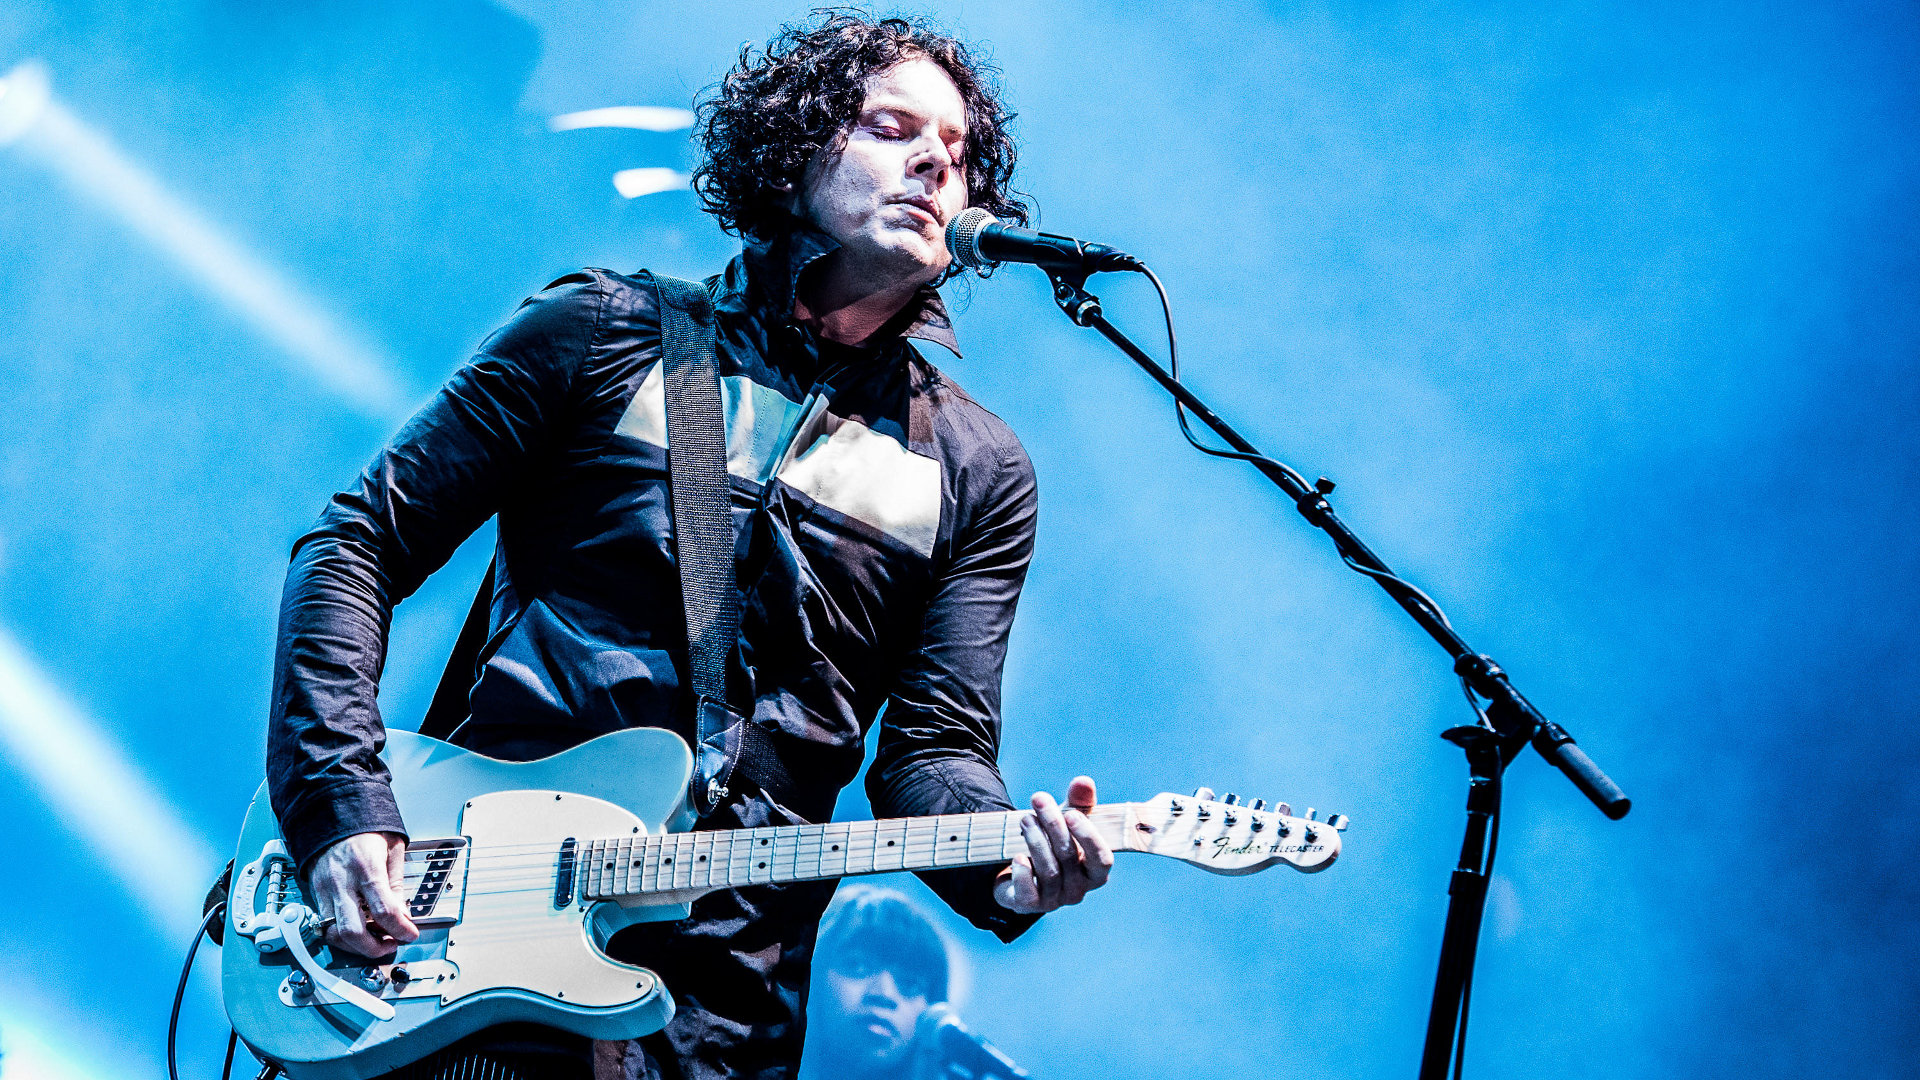 Jack White's 10 Best Songs